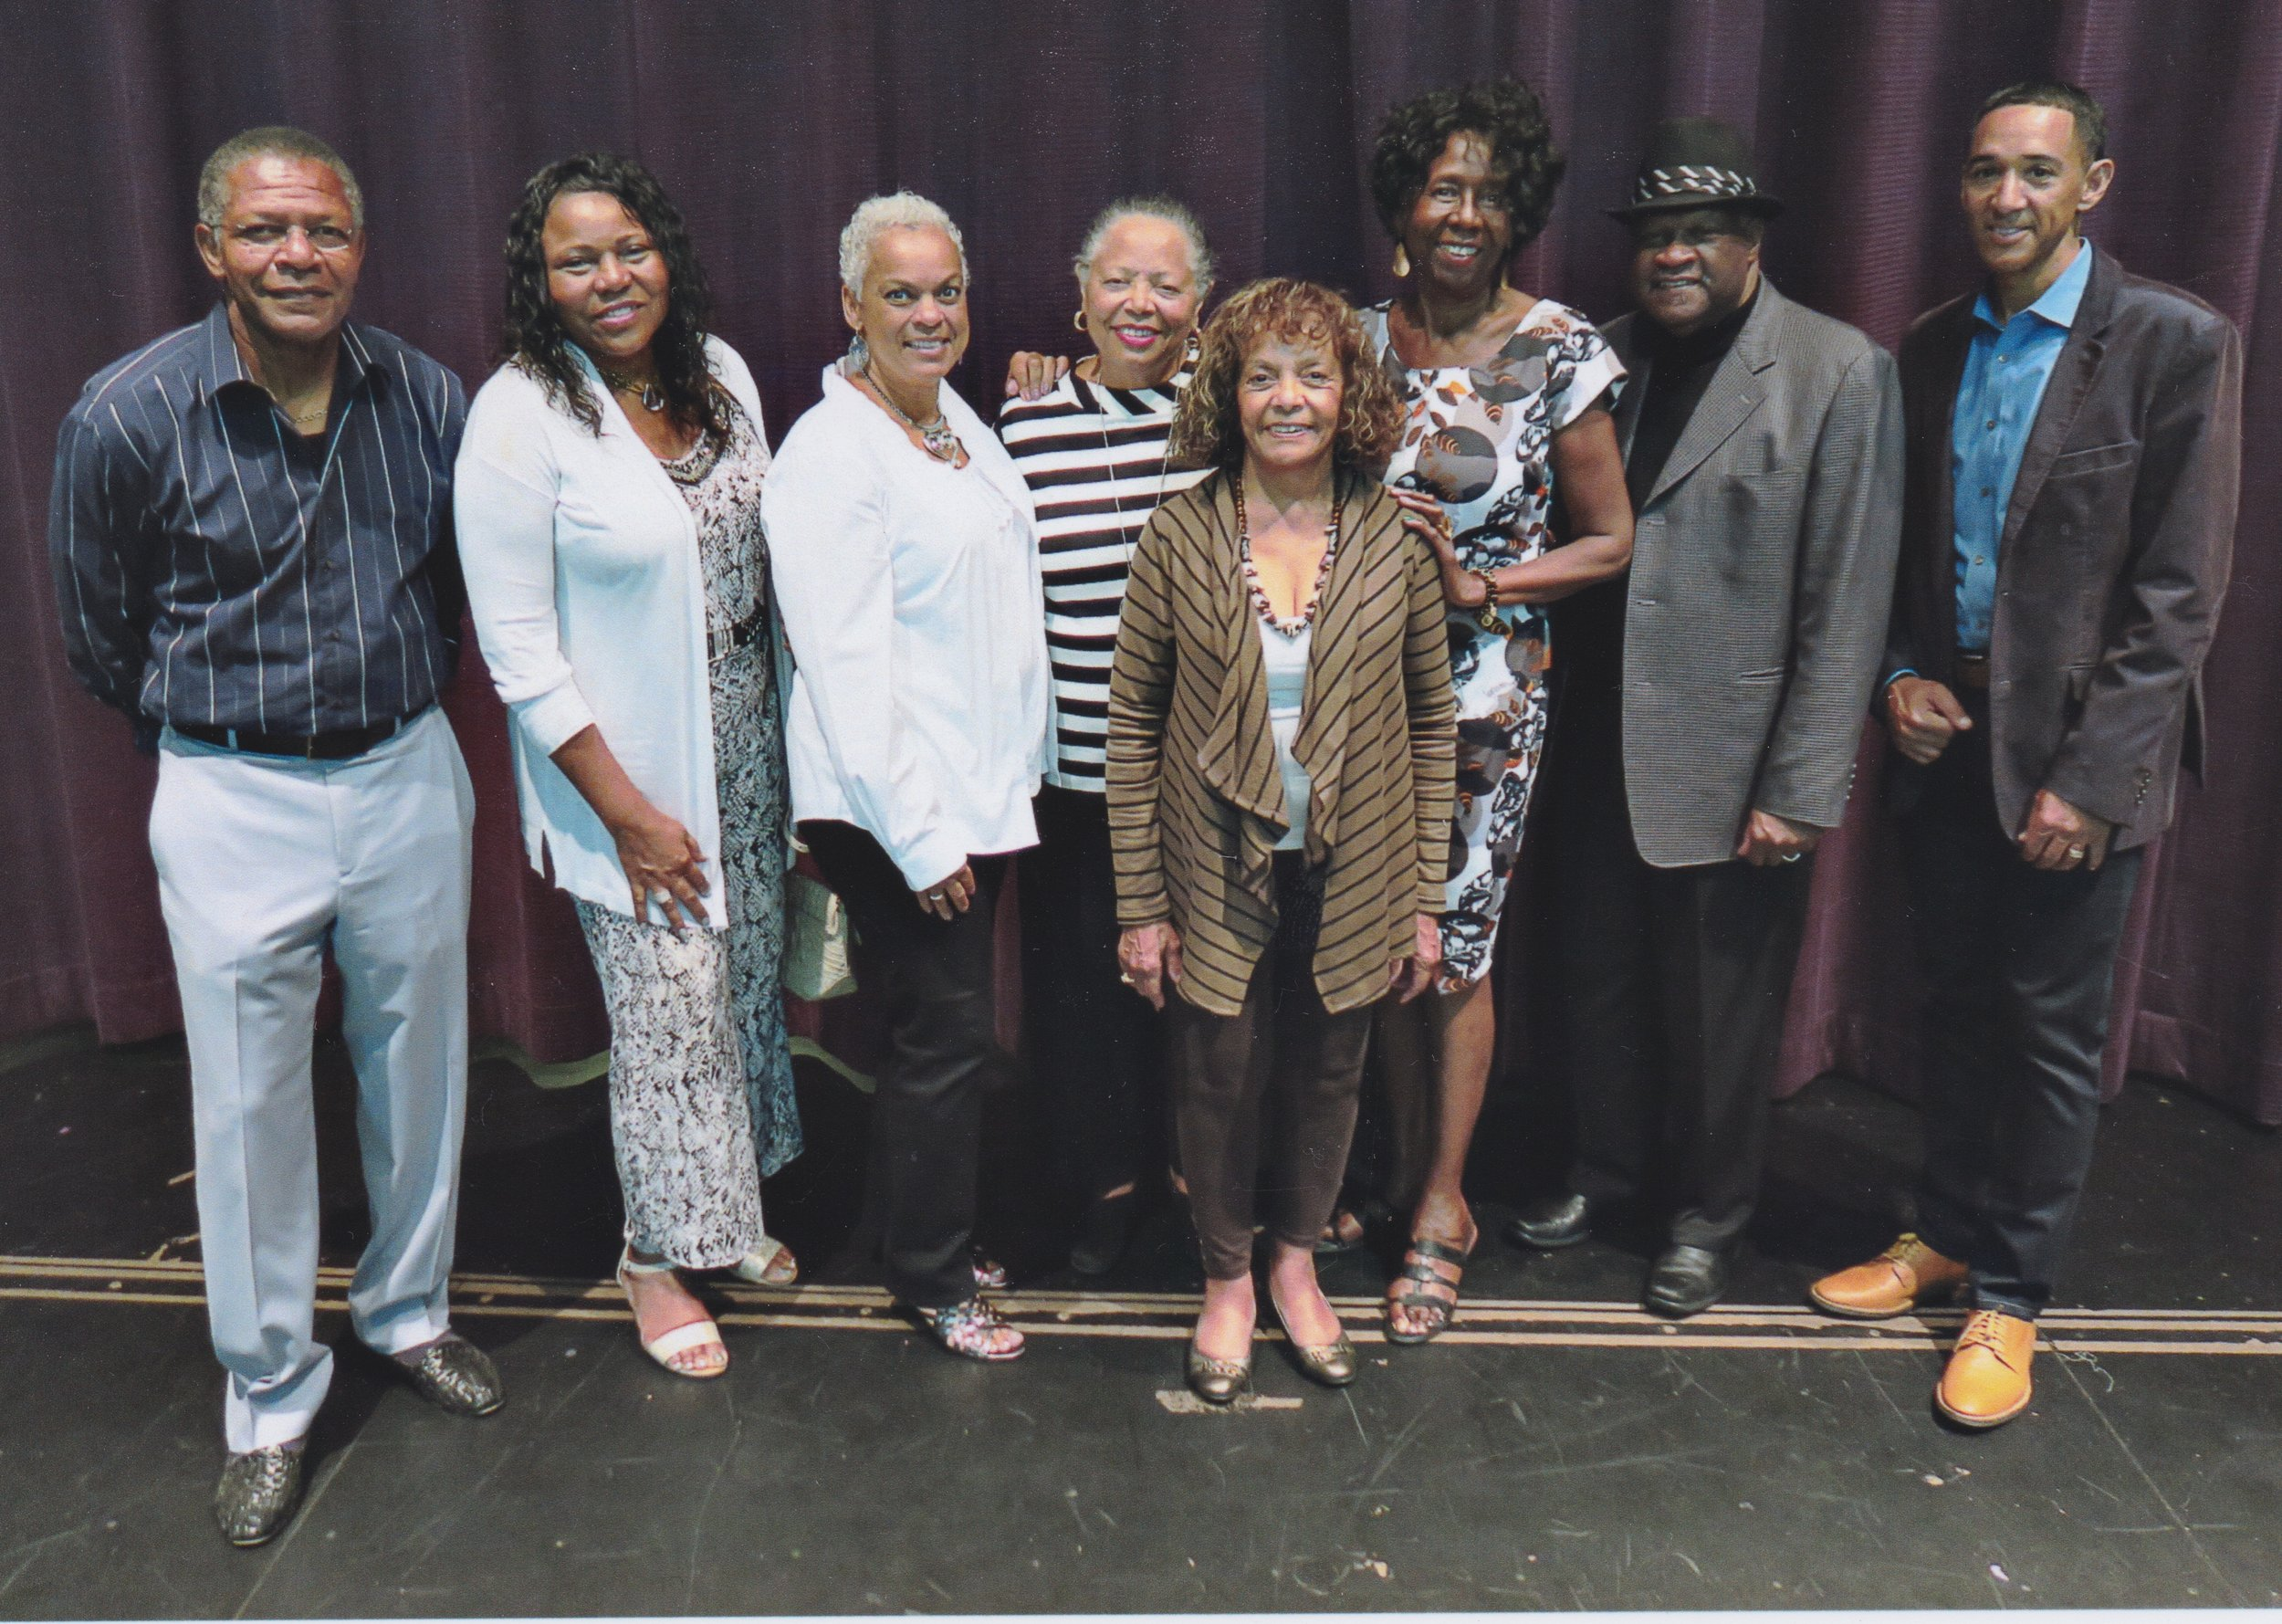 Panel assembled after the showing of the film. They engaged in a lively discussion after the film. Mike Beaseley, Mattie Hill, Vanessa Williams, Kathy Cotton, Janie Jensen, Bev Parker, John Hill, Rick Isom